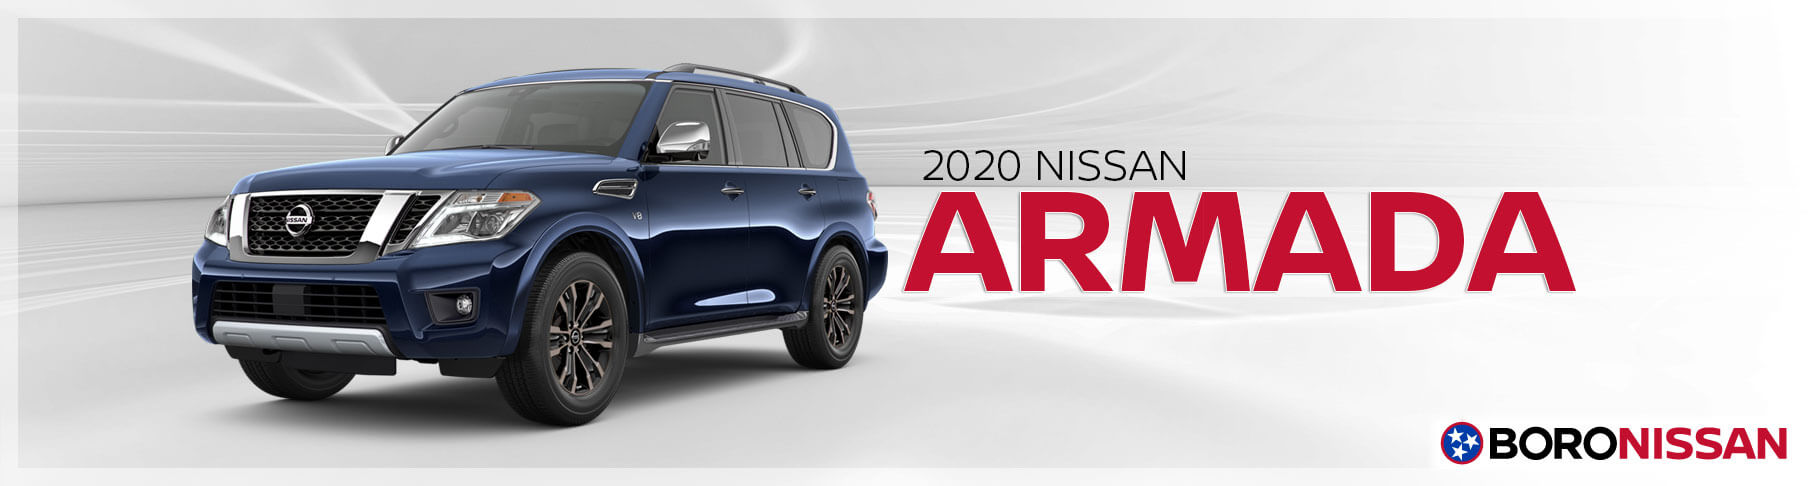 The New 2020 Nissan Armada